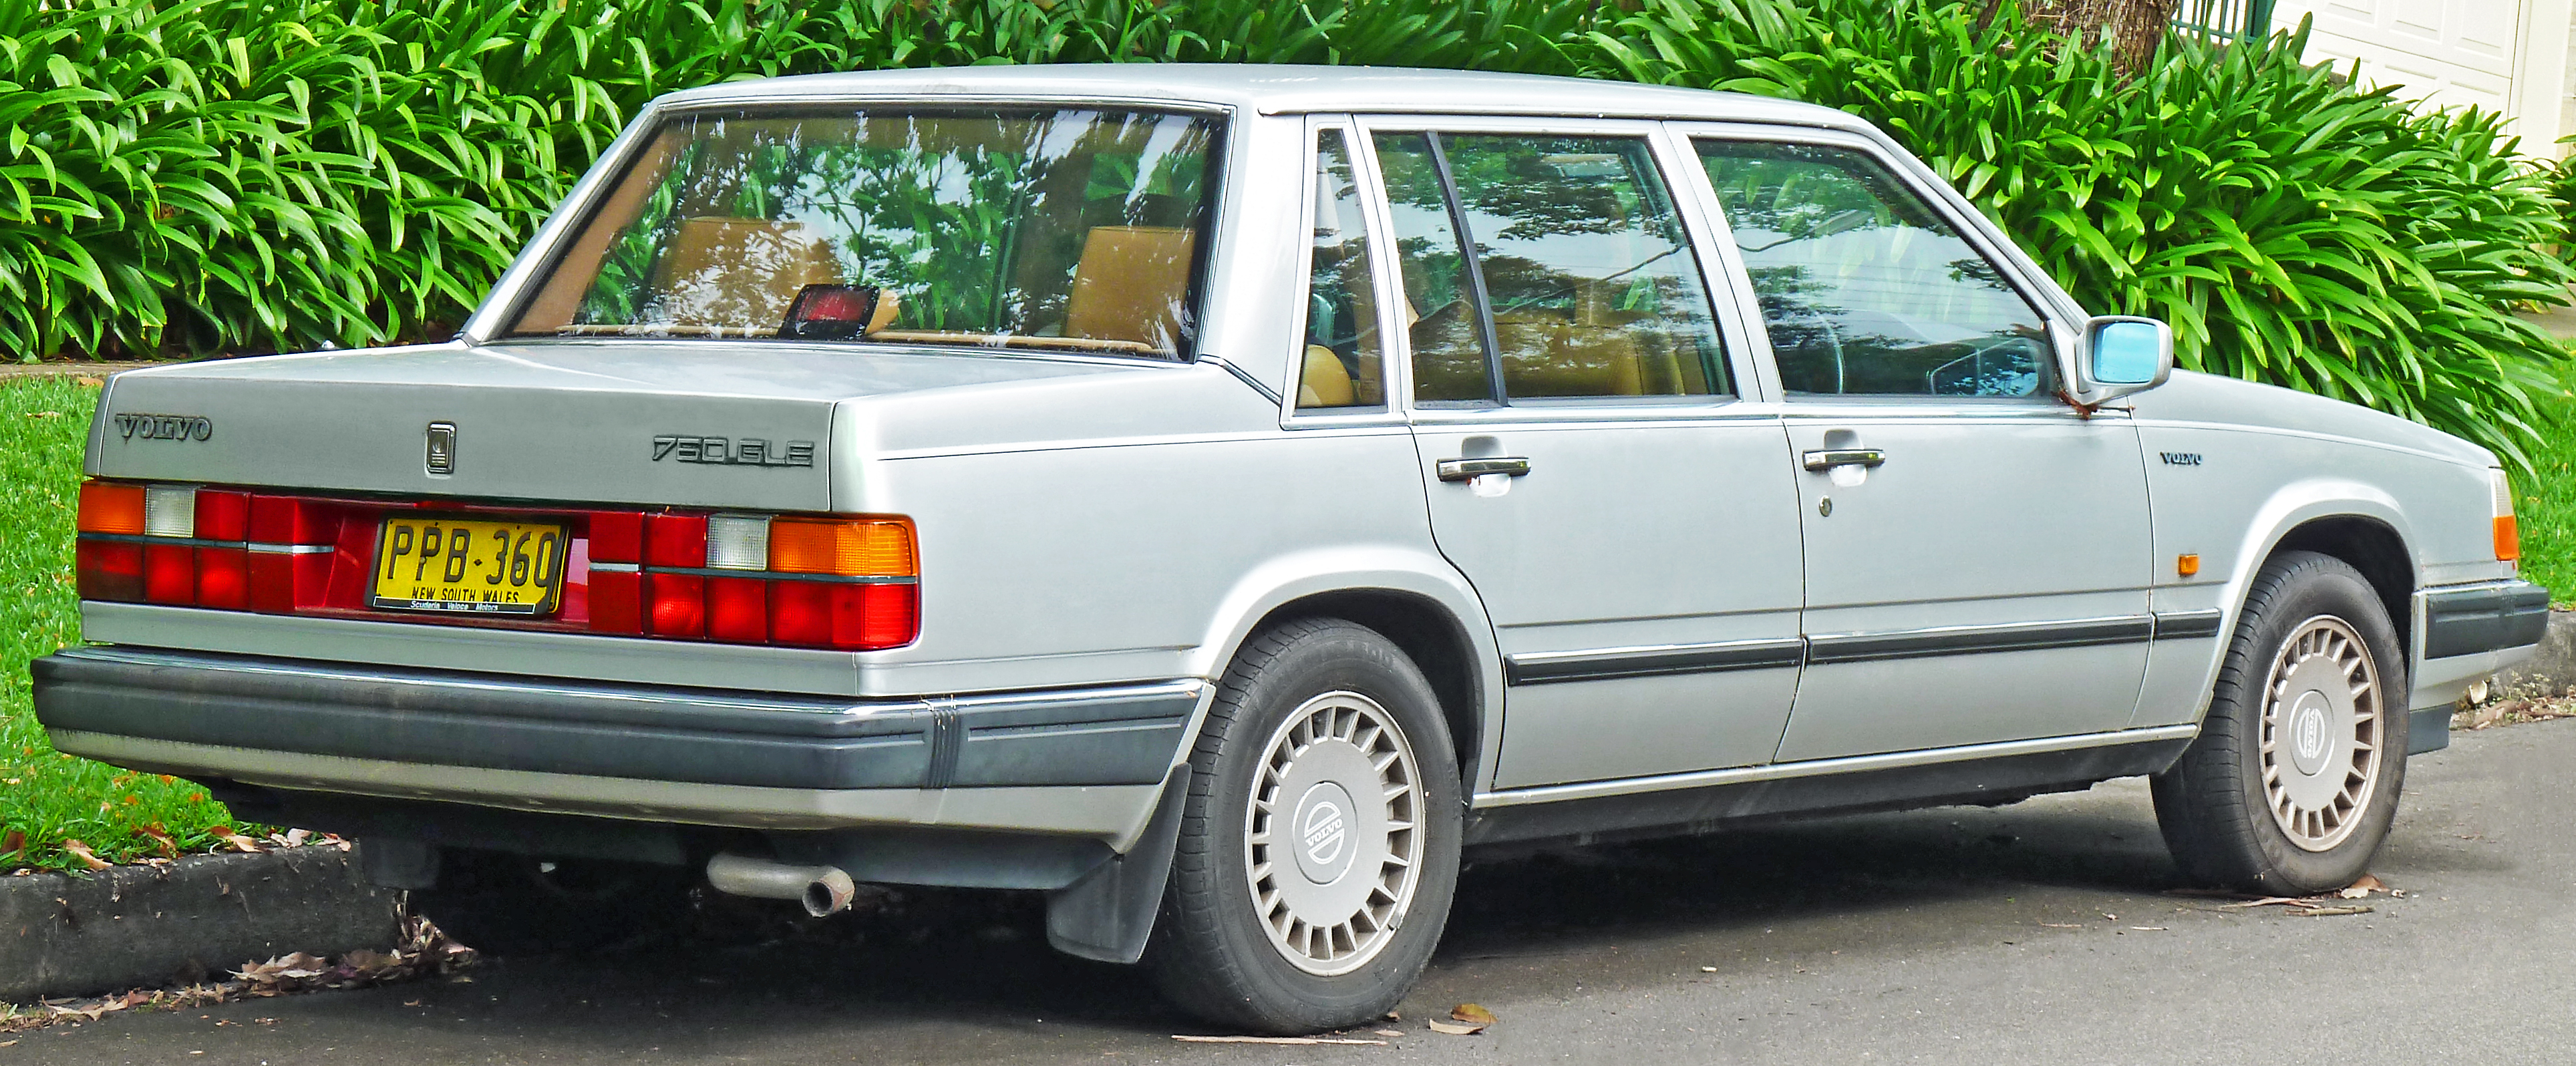 File 1987 1989 Volvo 760 Gle Sedan 2011 11 18 02 Jpg Wikimedia Commons